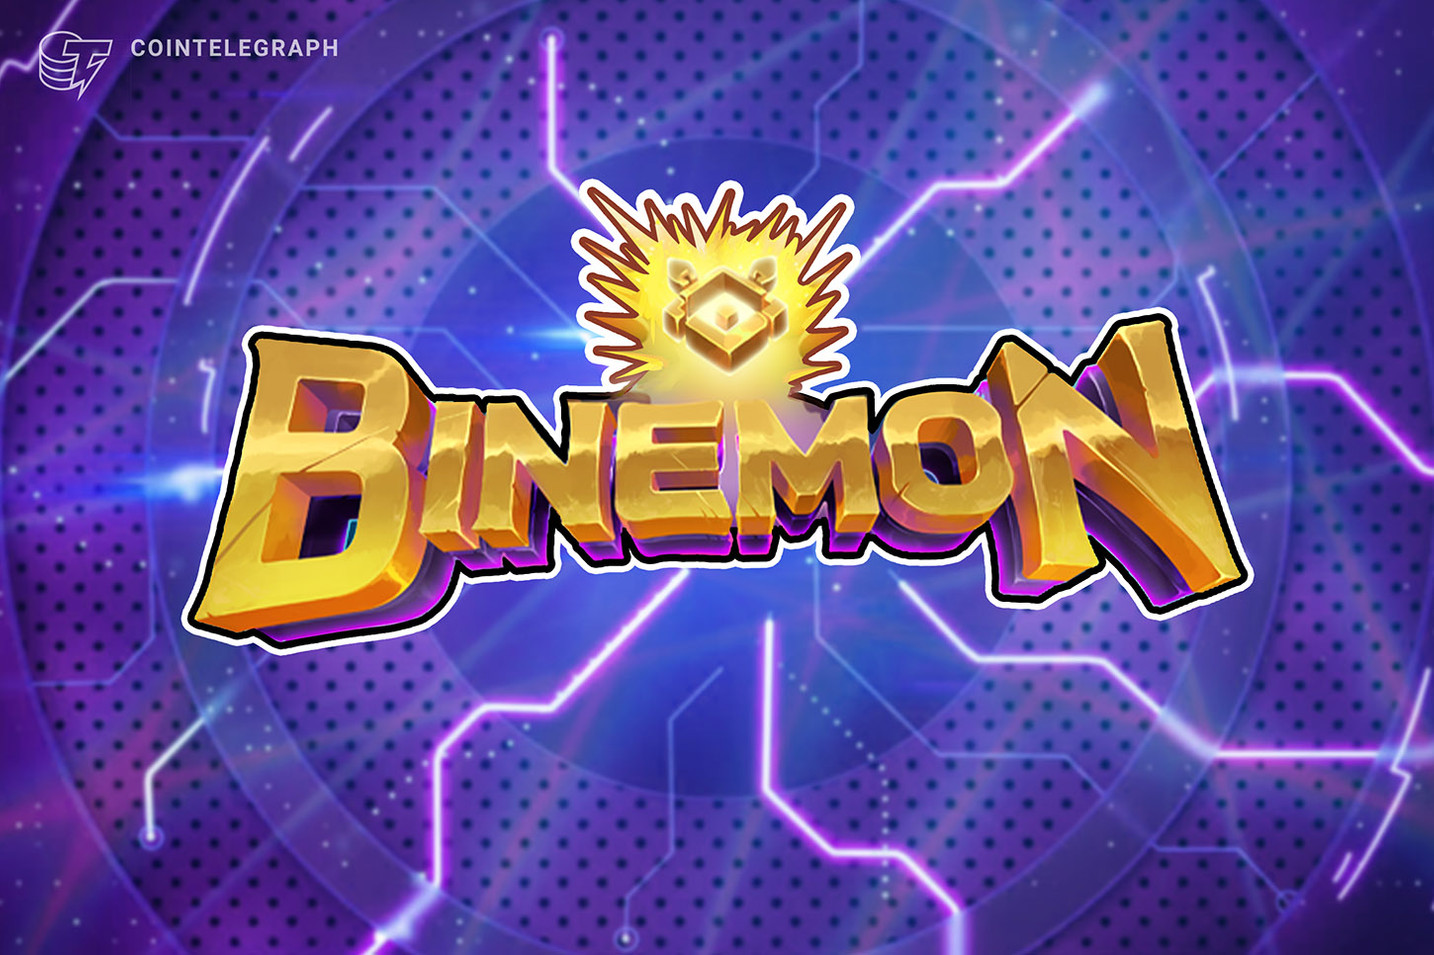 Binemon adds a unique GameFi dimension to the metaverse and NFT world